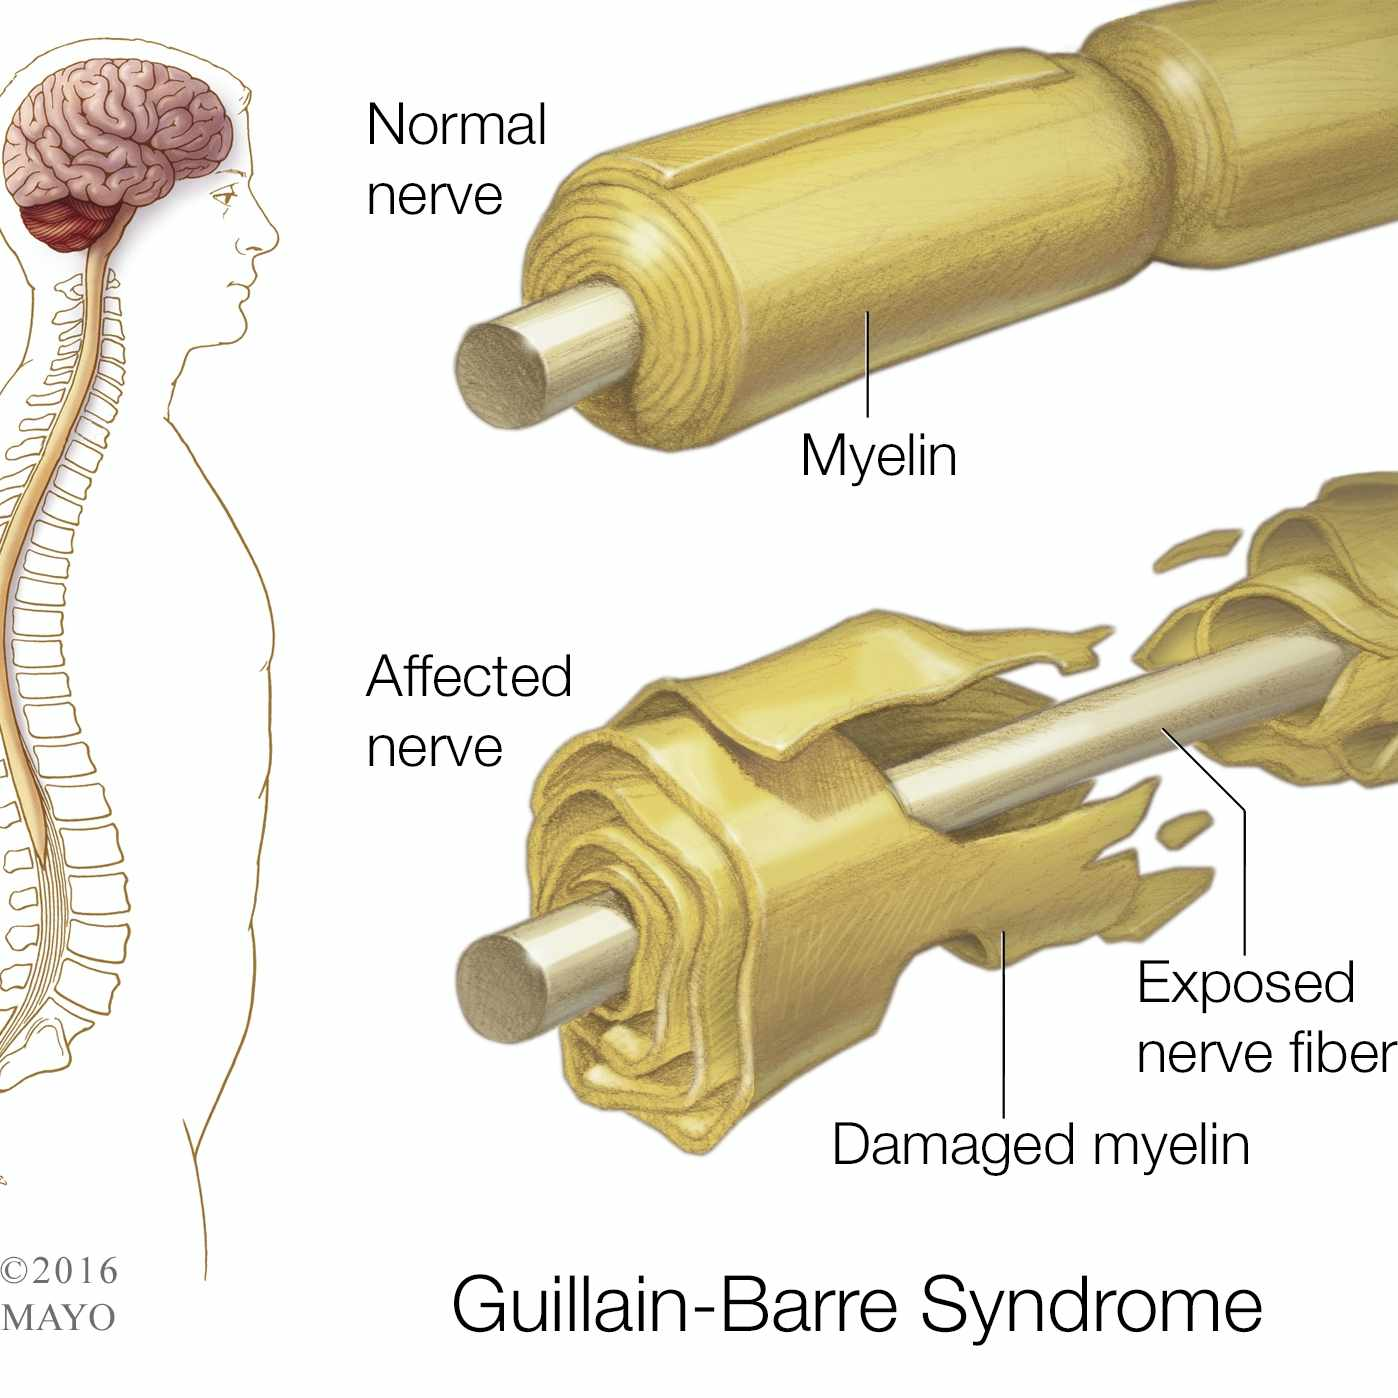 a medical illustration of a normal nerve and a damaged nerve in the spine, Guillain-Barre Syndrome